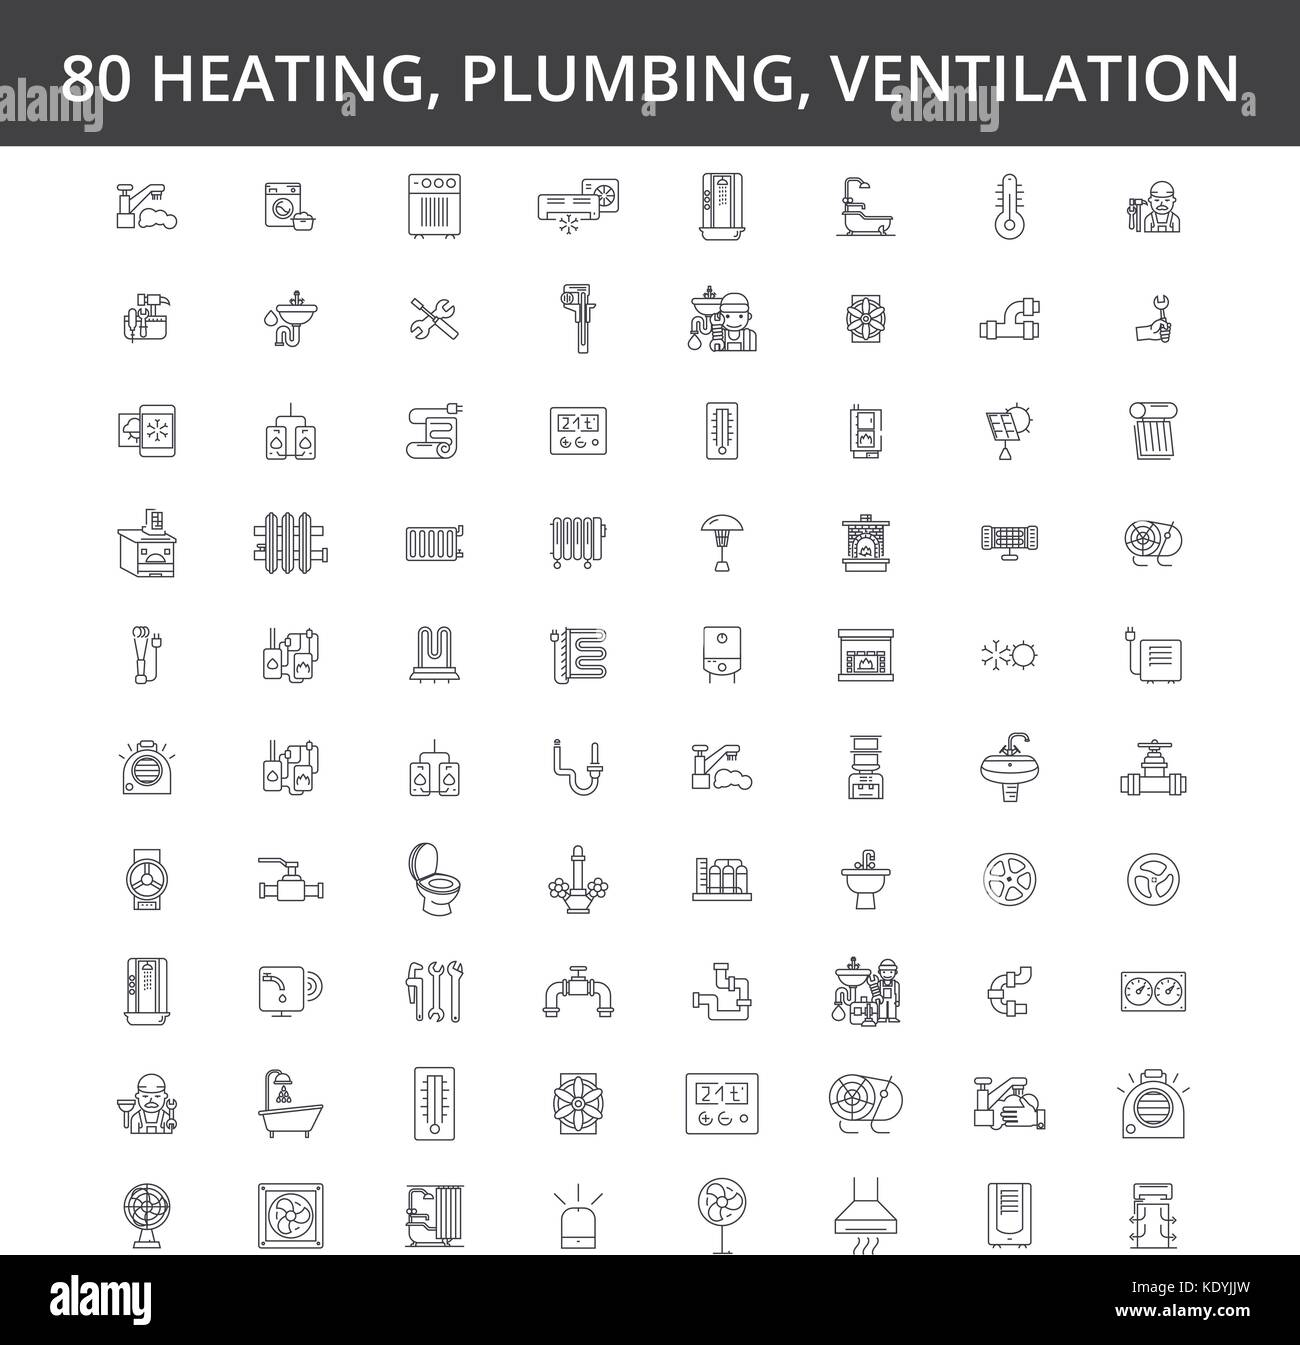 Hvac, heating, air conditioning, ventilation, plumbing service Stock ...